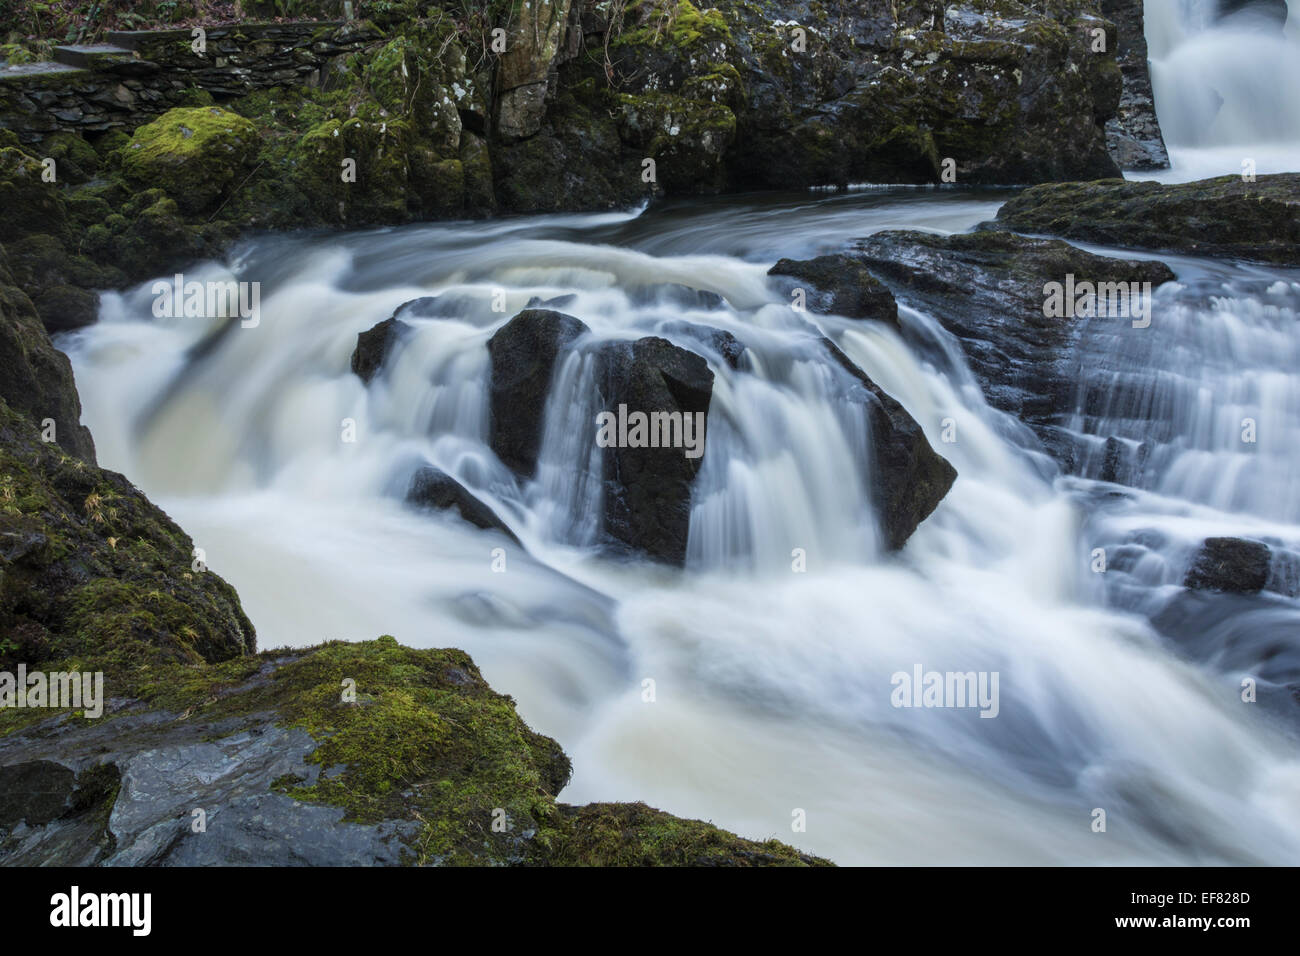 Rival Falls on the famous Ingleton Waterfalls walk in the Yorkshire Dales. - Stock Image